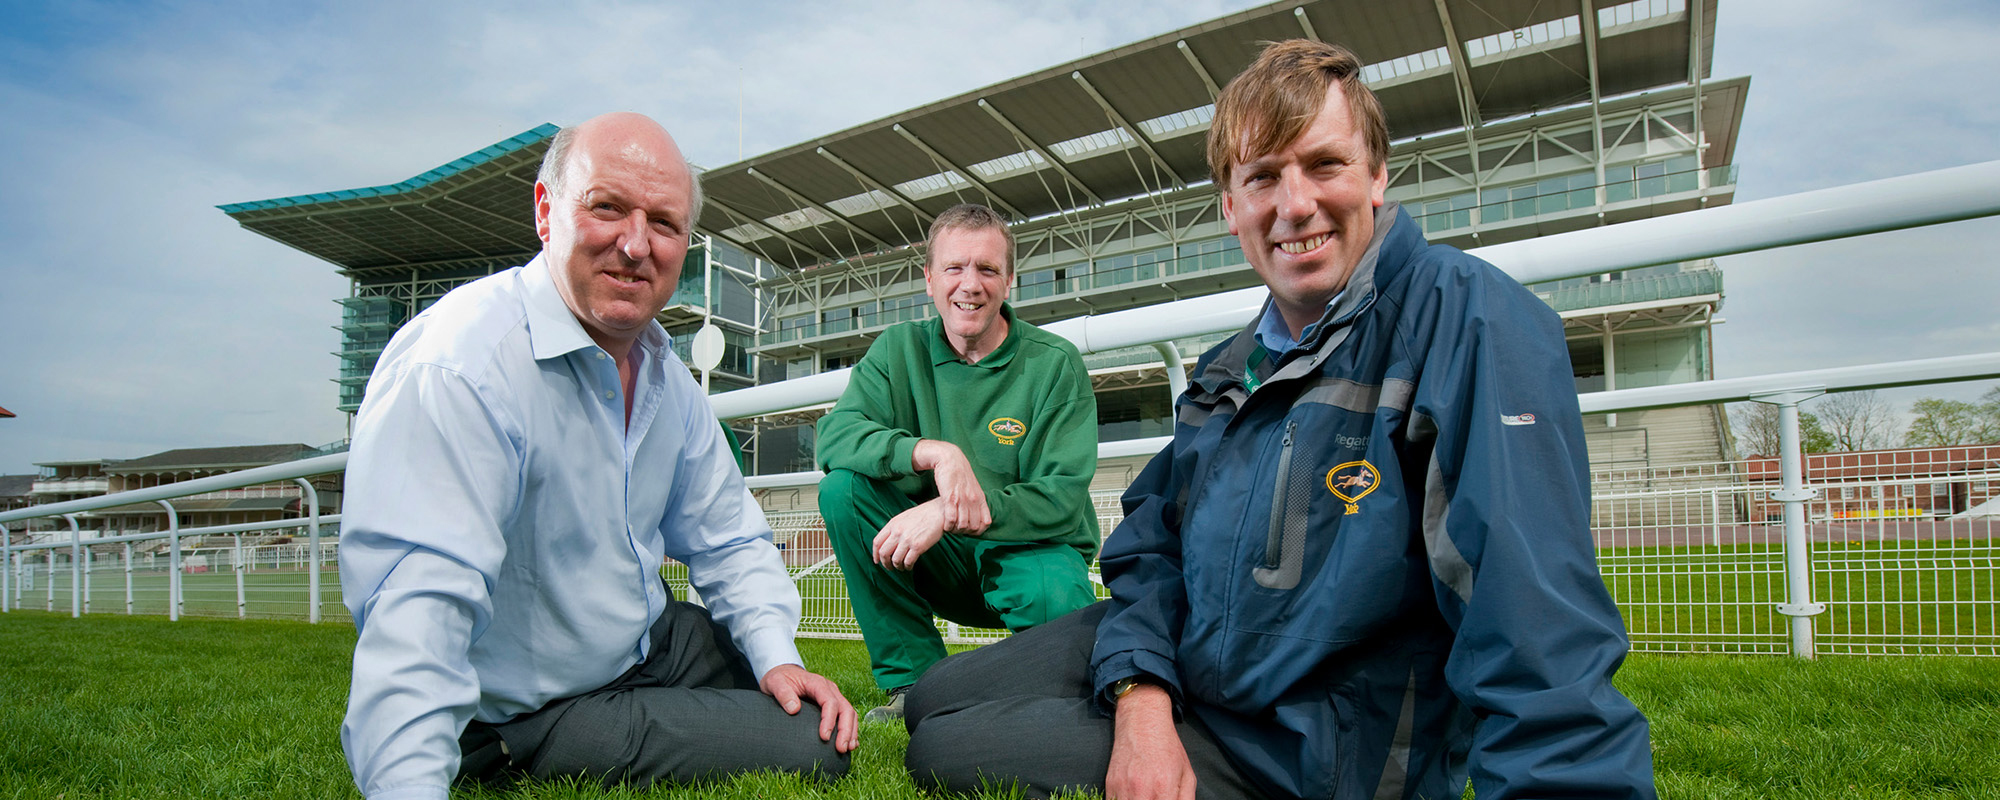 Stephen Fell at York Racecourse with York Racecourse team